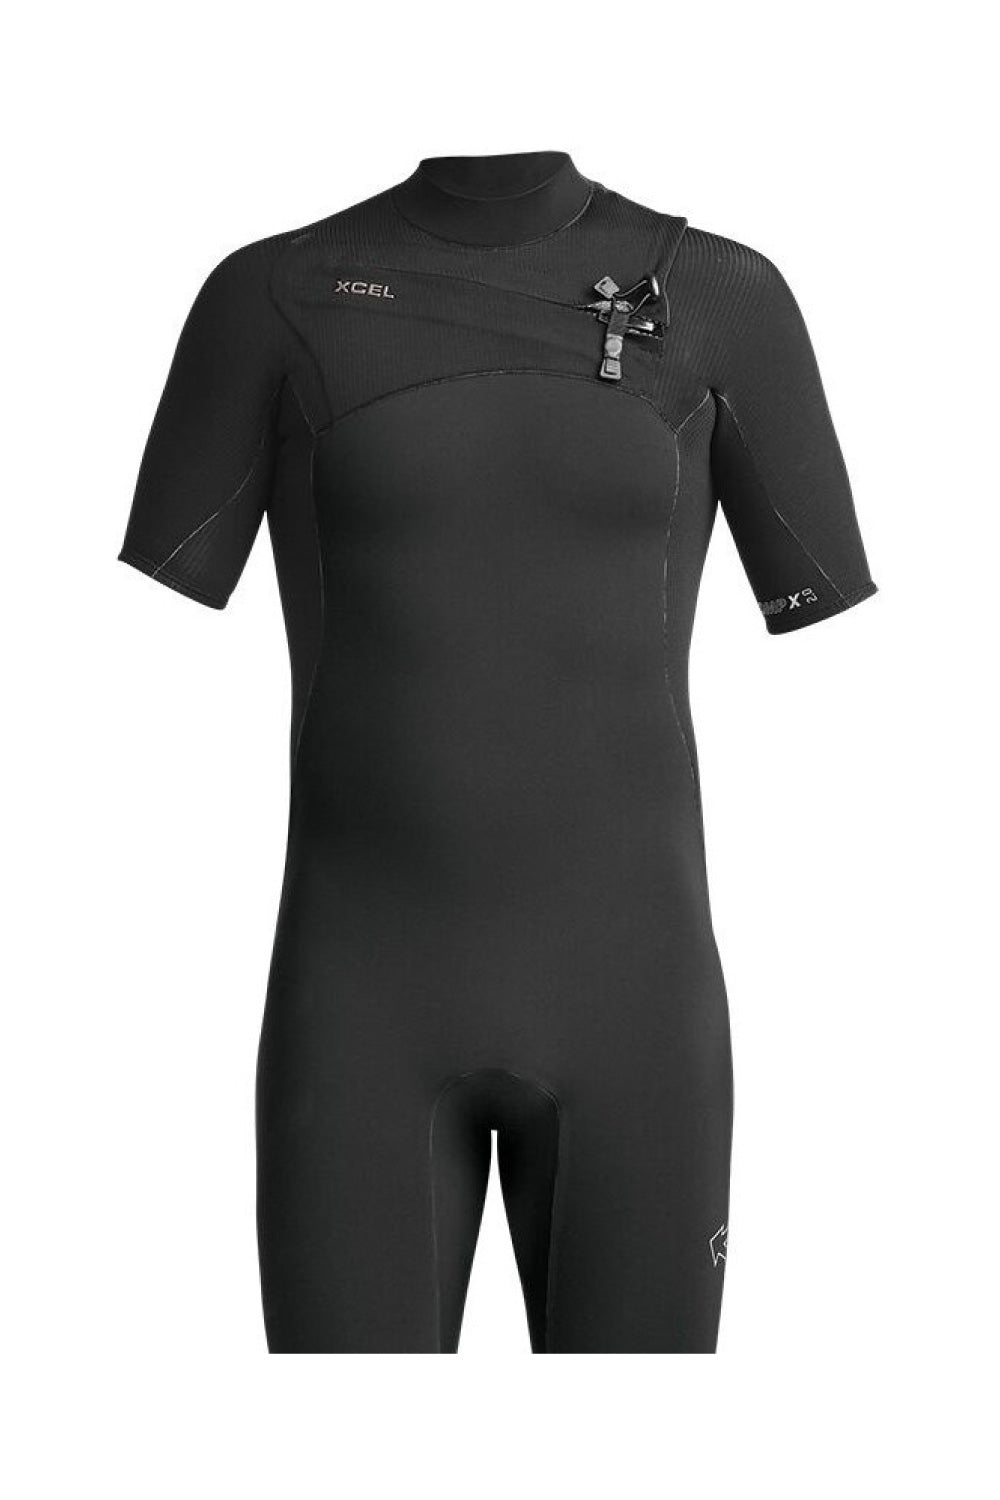 XCEL 2mm Comp X Short Sleeve Spring Suit